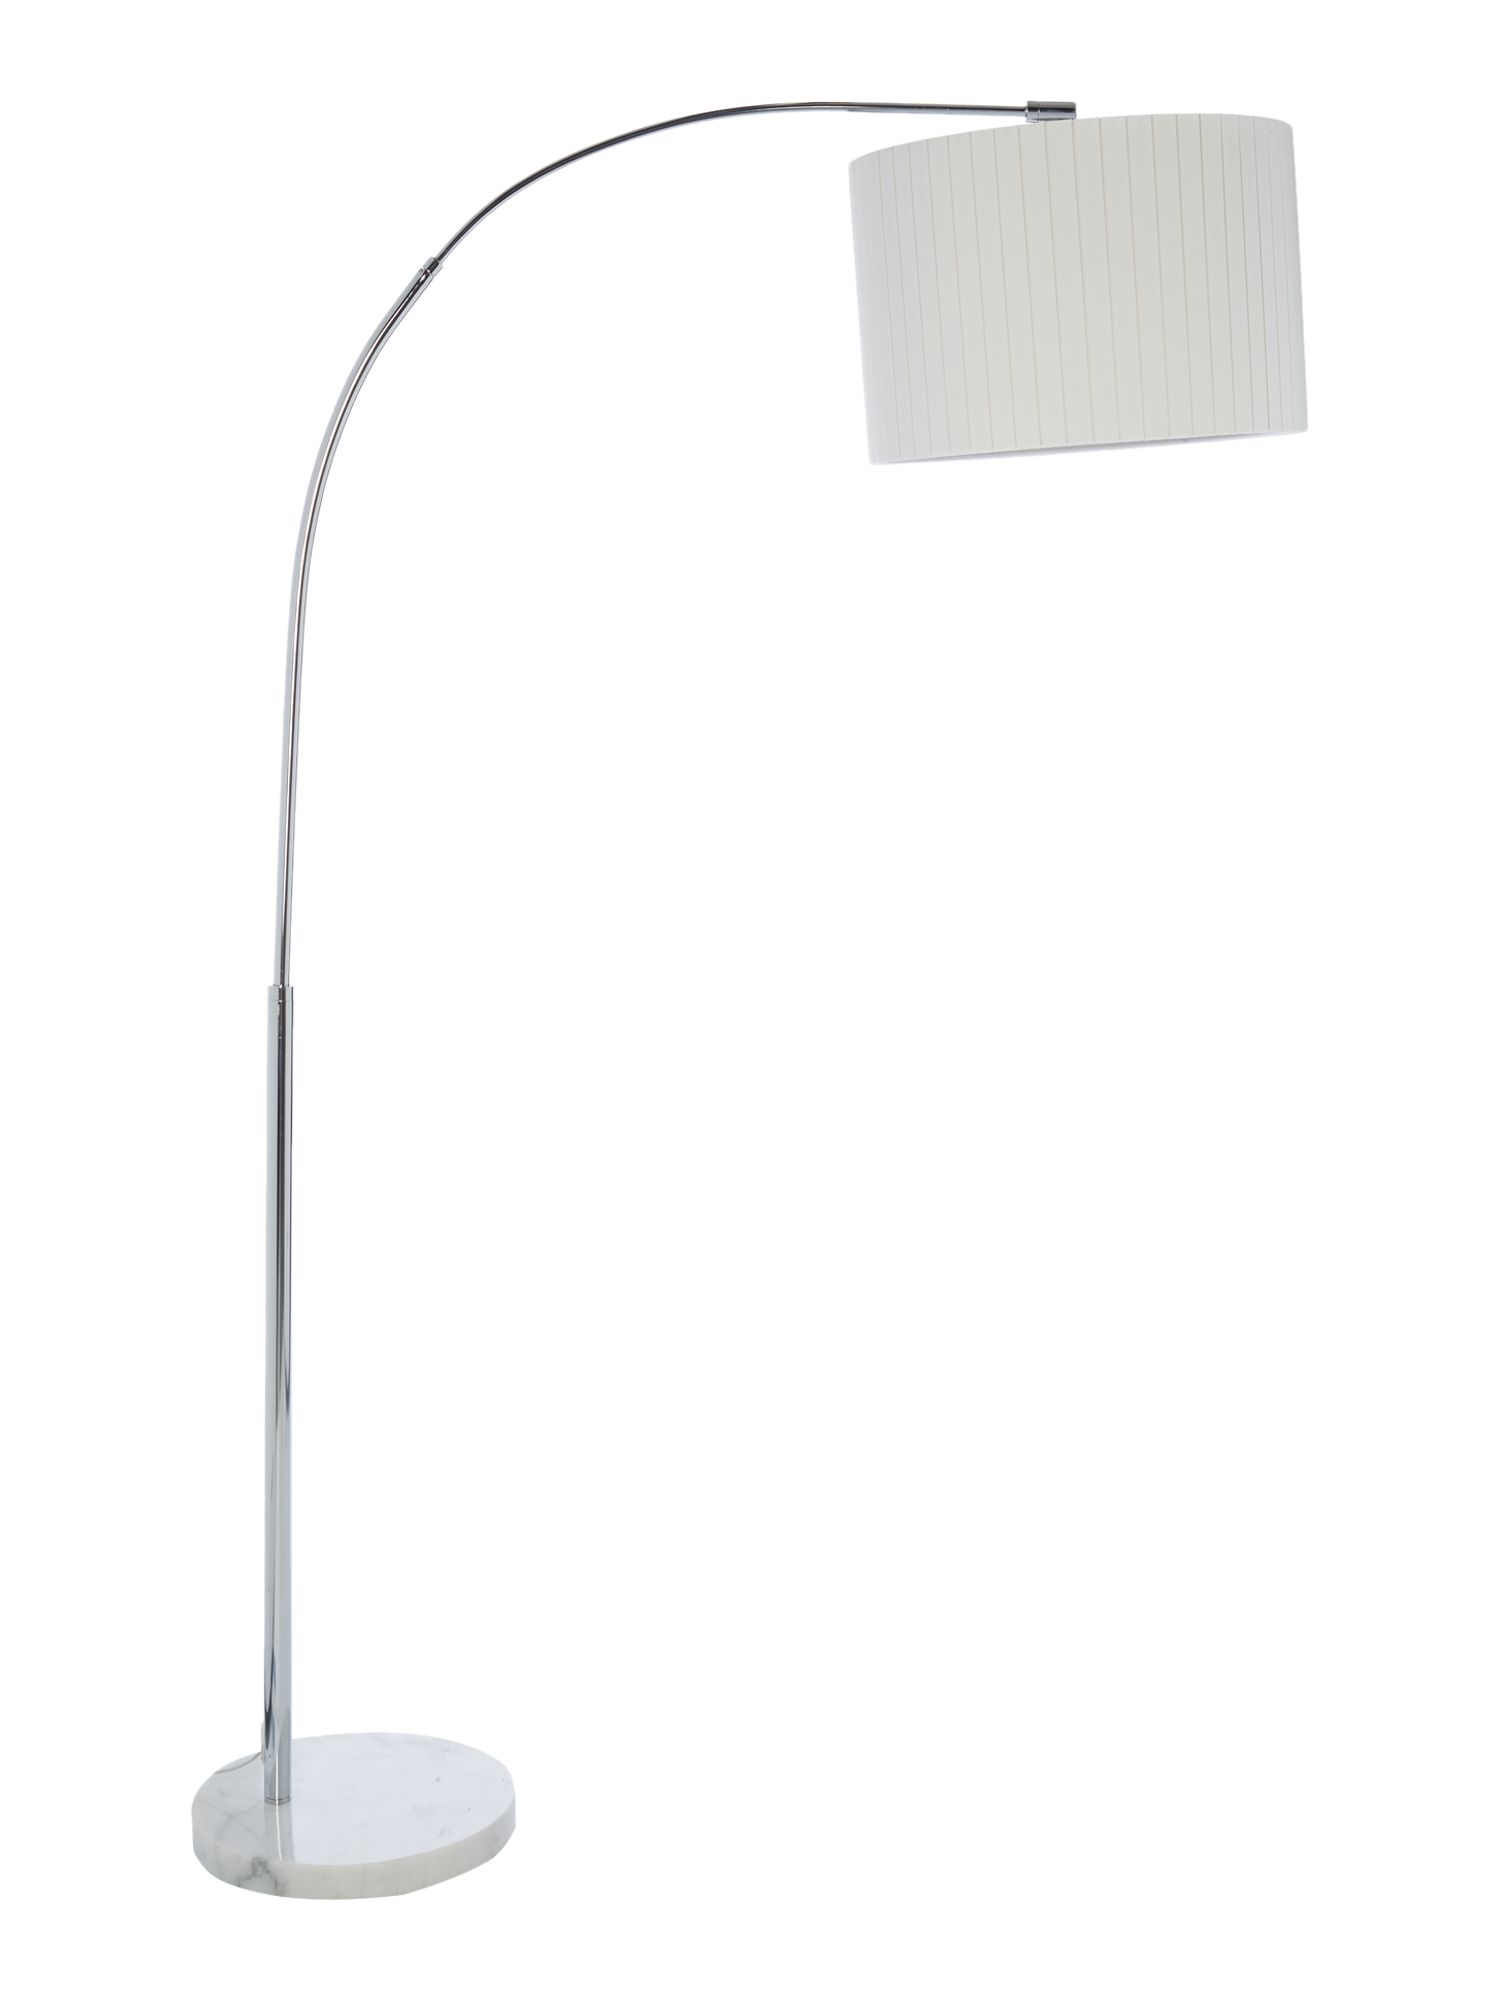 Casa Couture Demi White Marble Arc Floor Lamp - House of Fraser